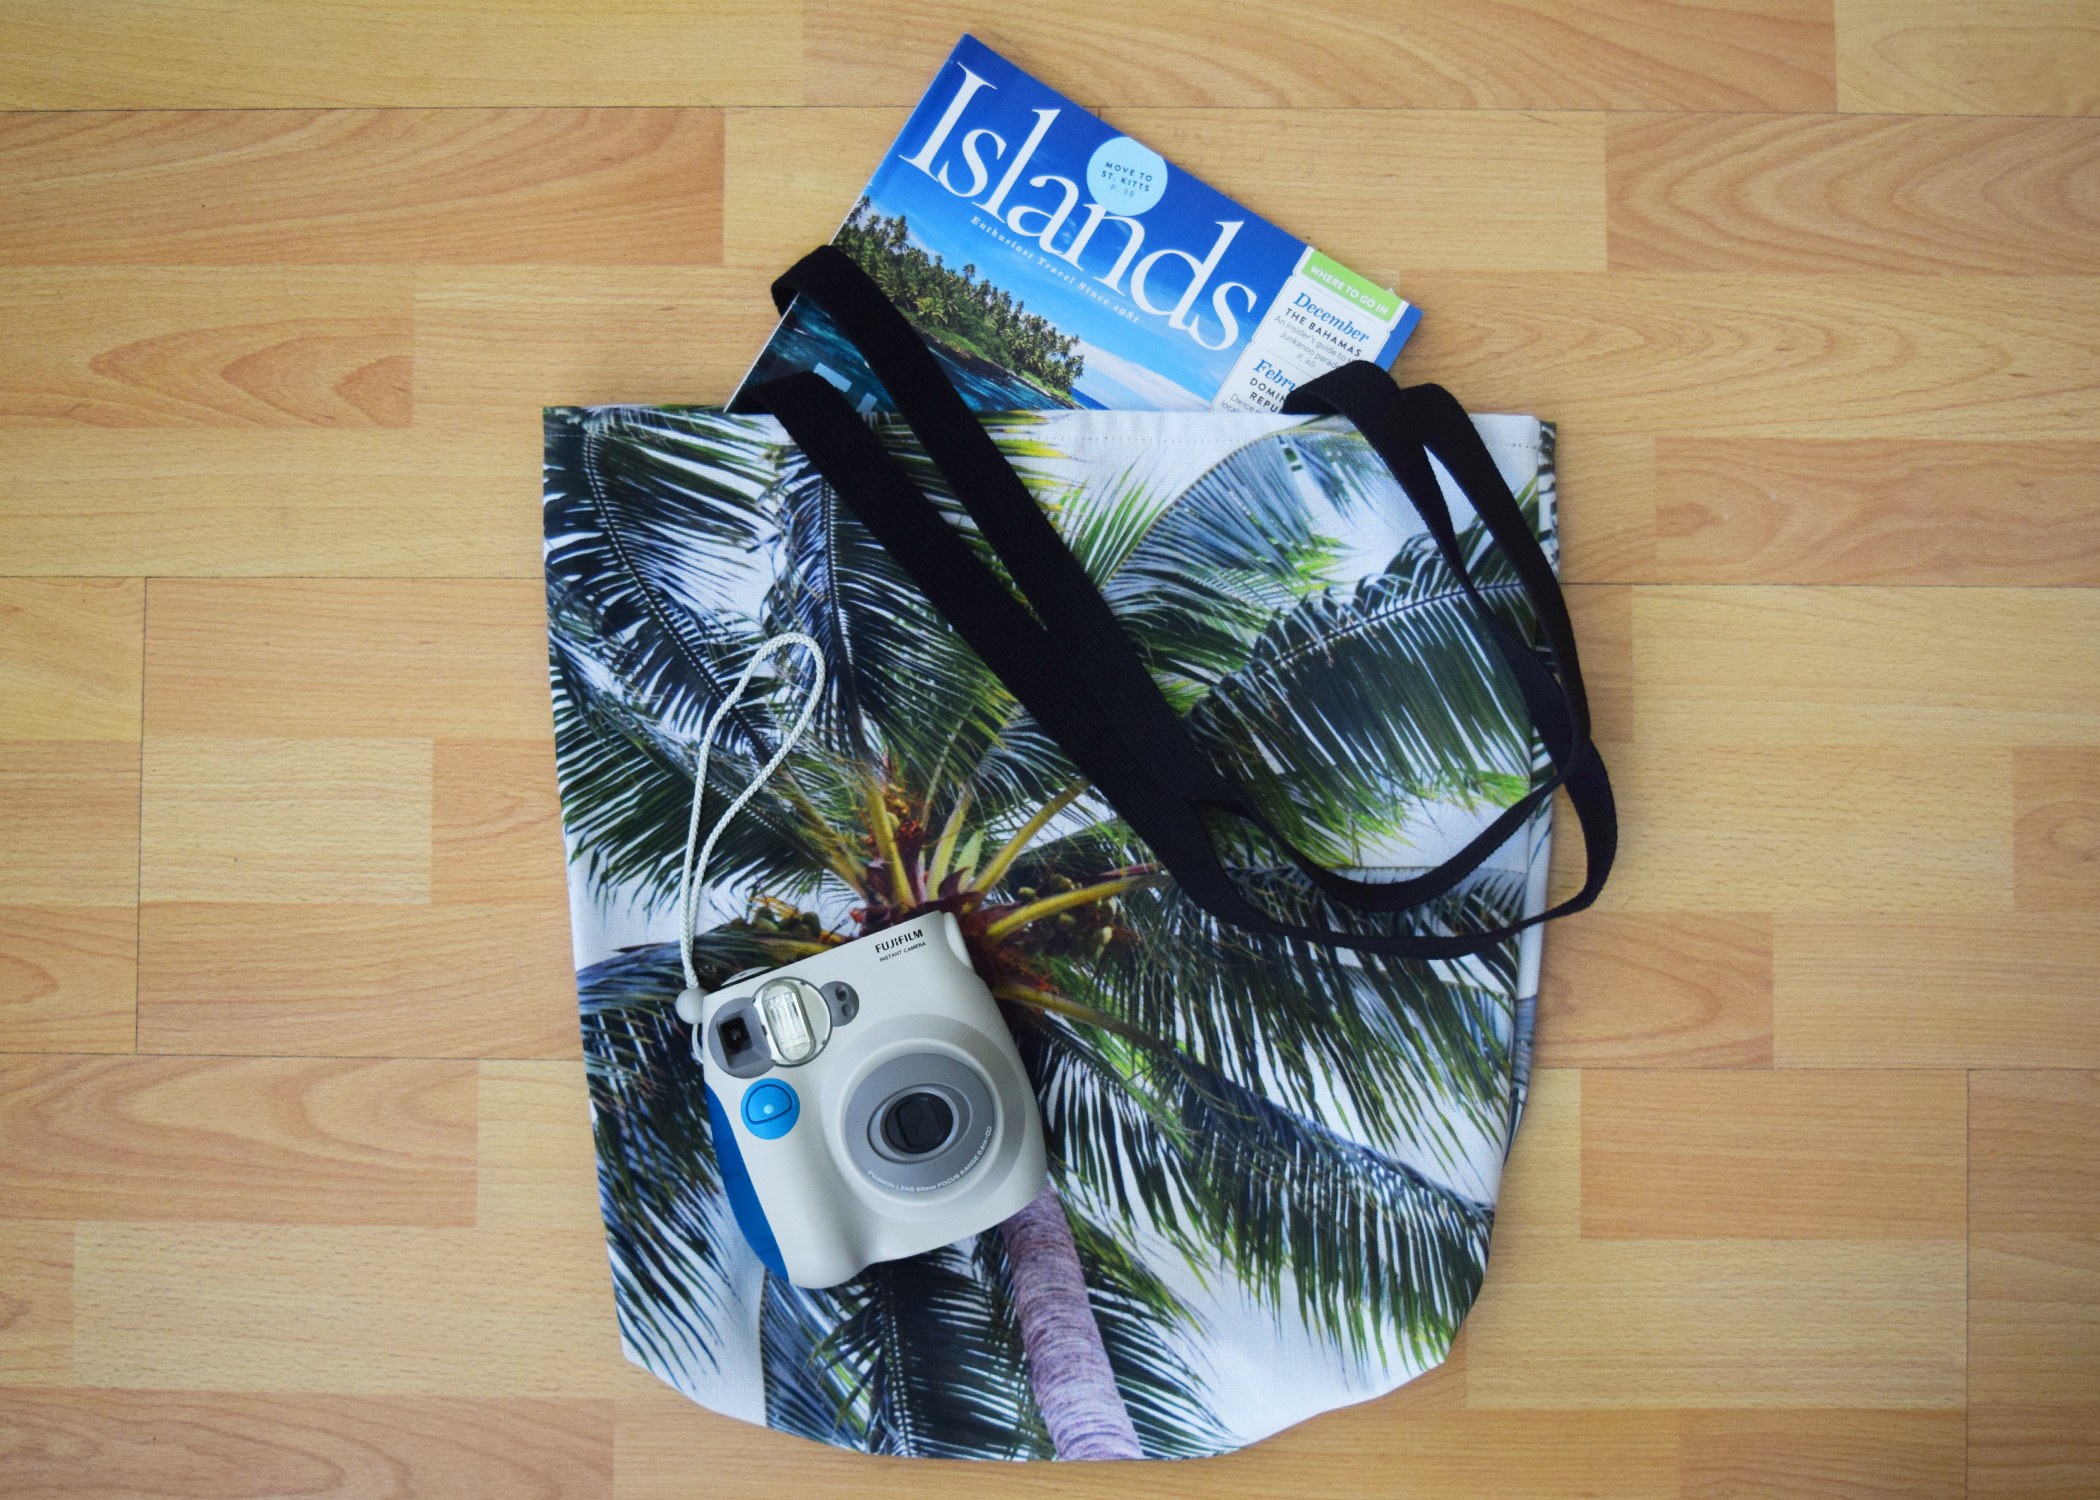 caribbean palm tote on floor with magazines and instax camera.jpg